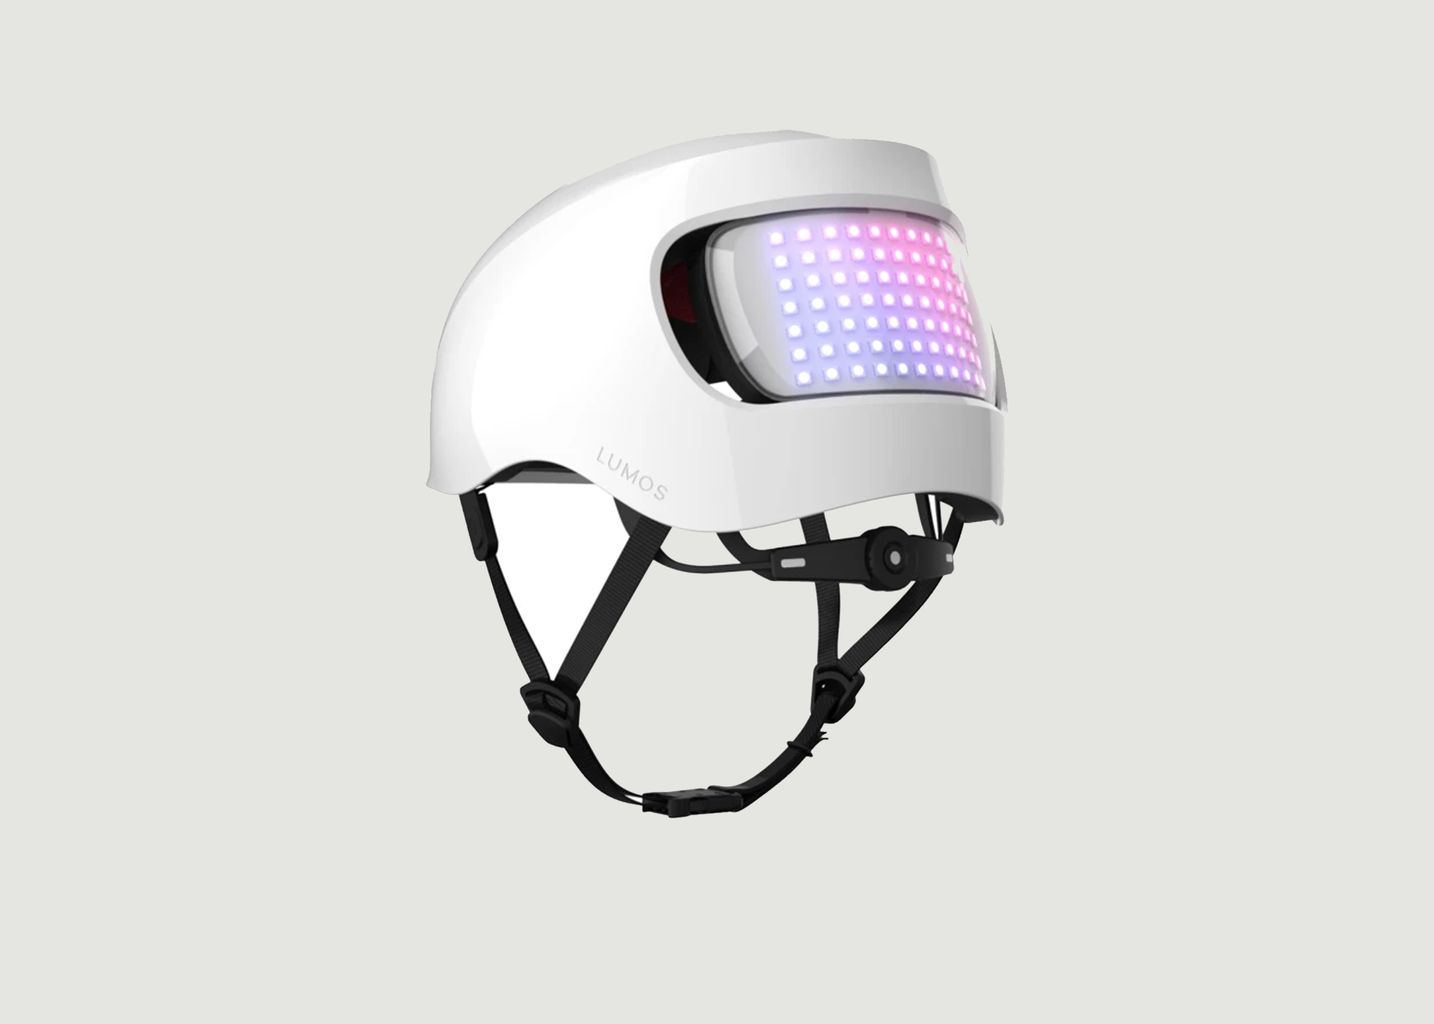 Casque Lumos Matrix - Lumos Helmet